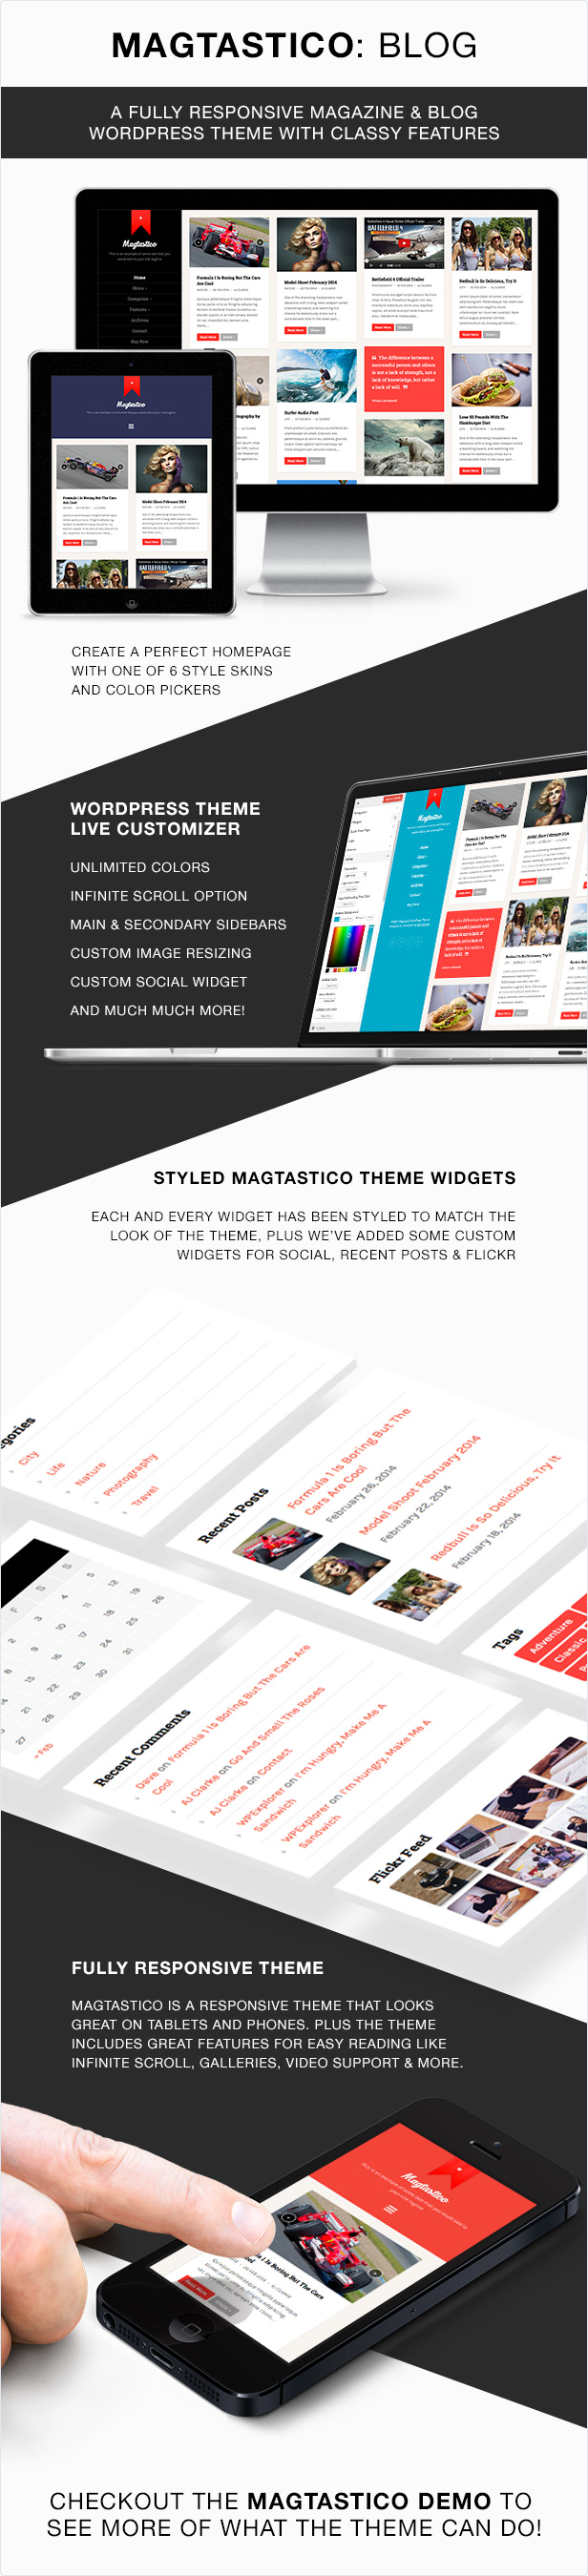 Magtastico WordPress Layout Features